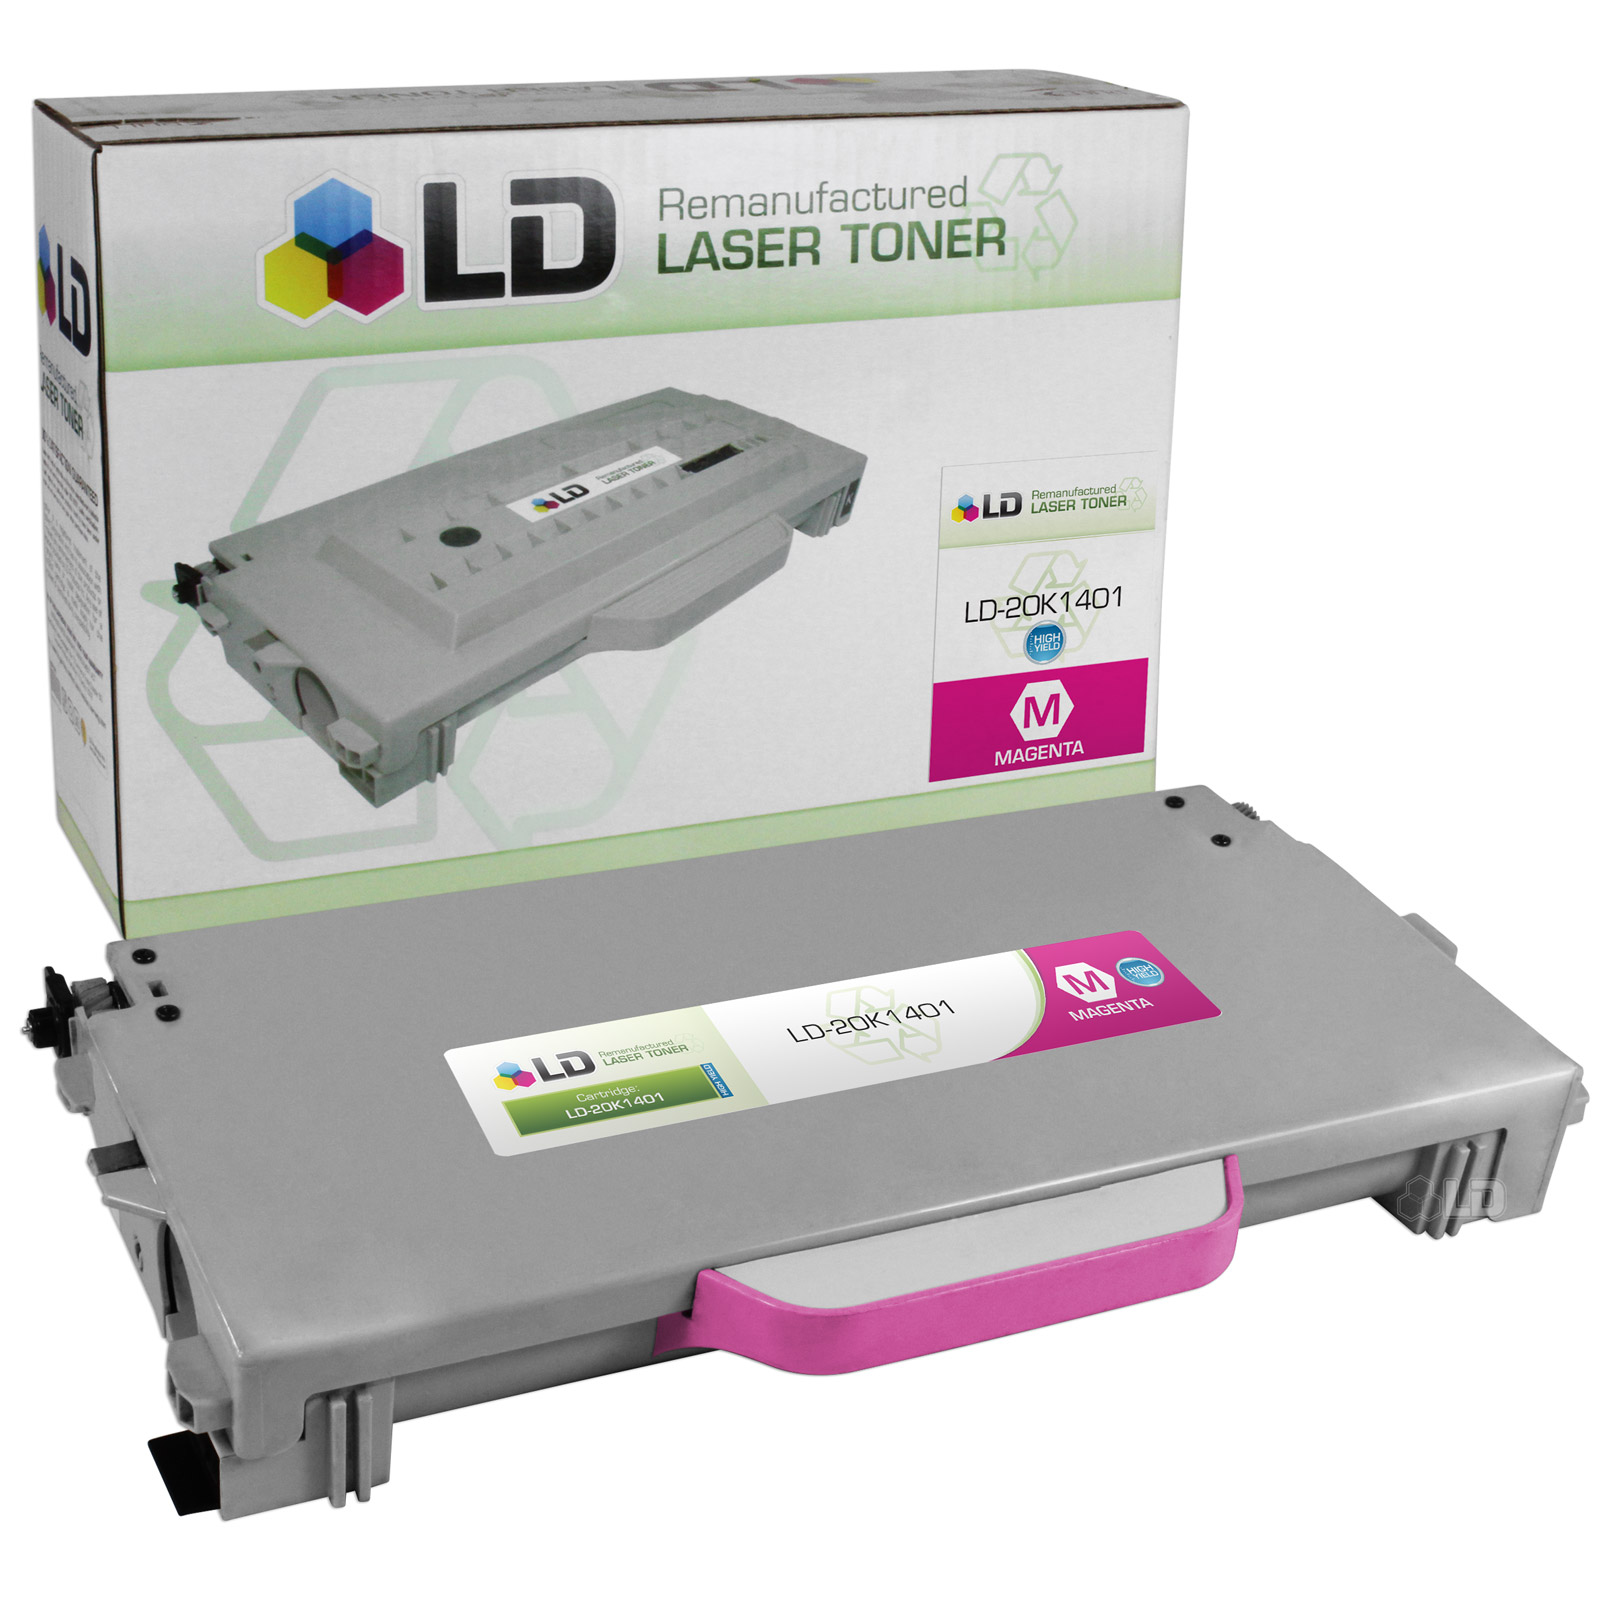 LD Remanufactured High Yield Magenta Laser Toner Cartridge for Lexmark 20K1401